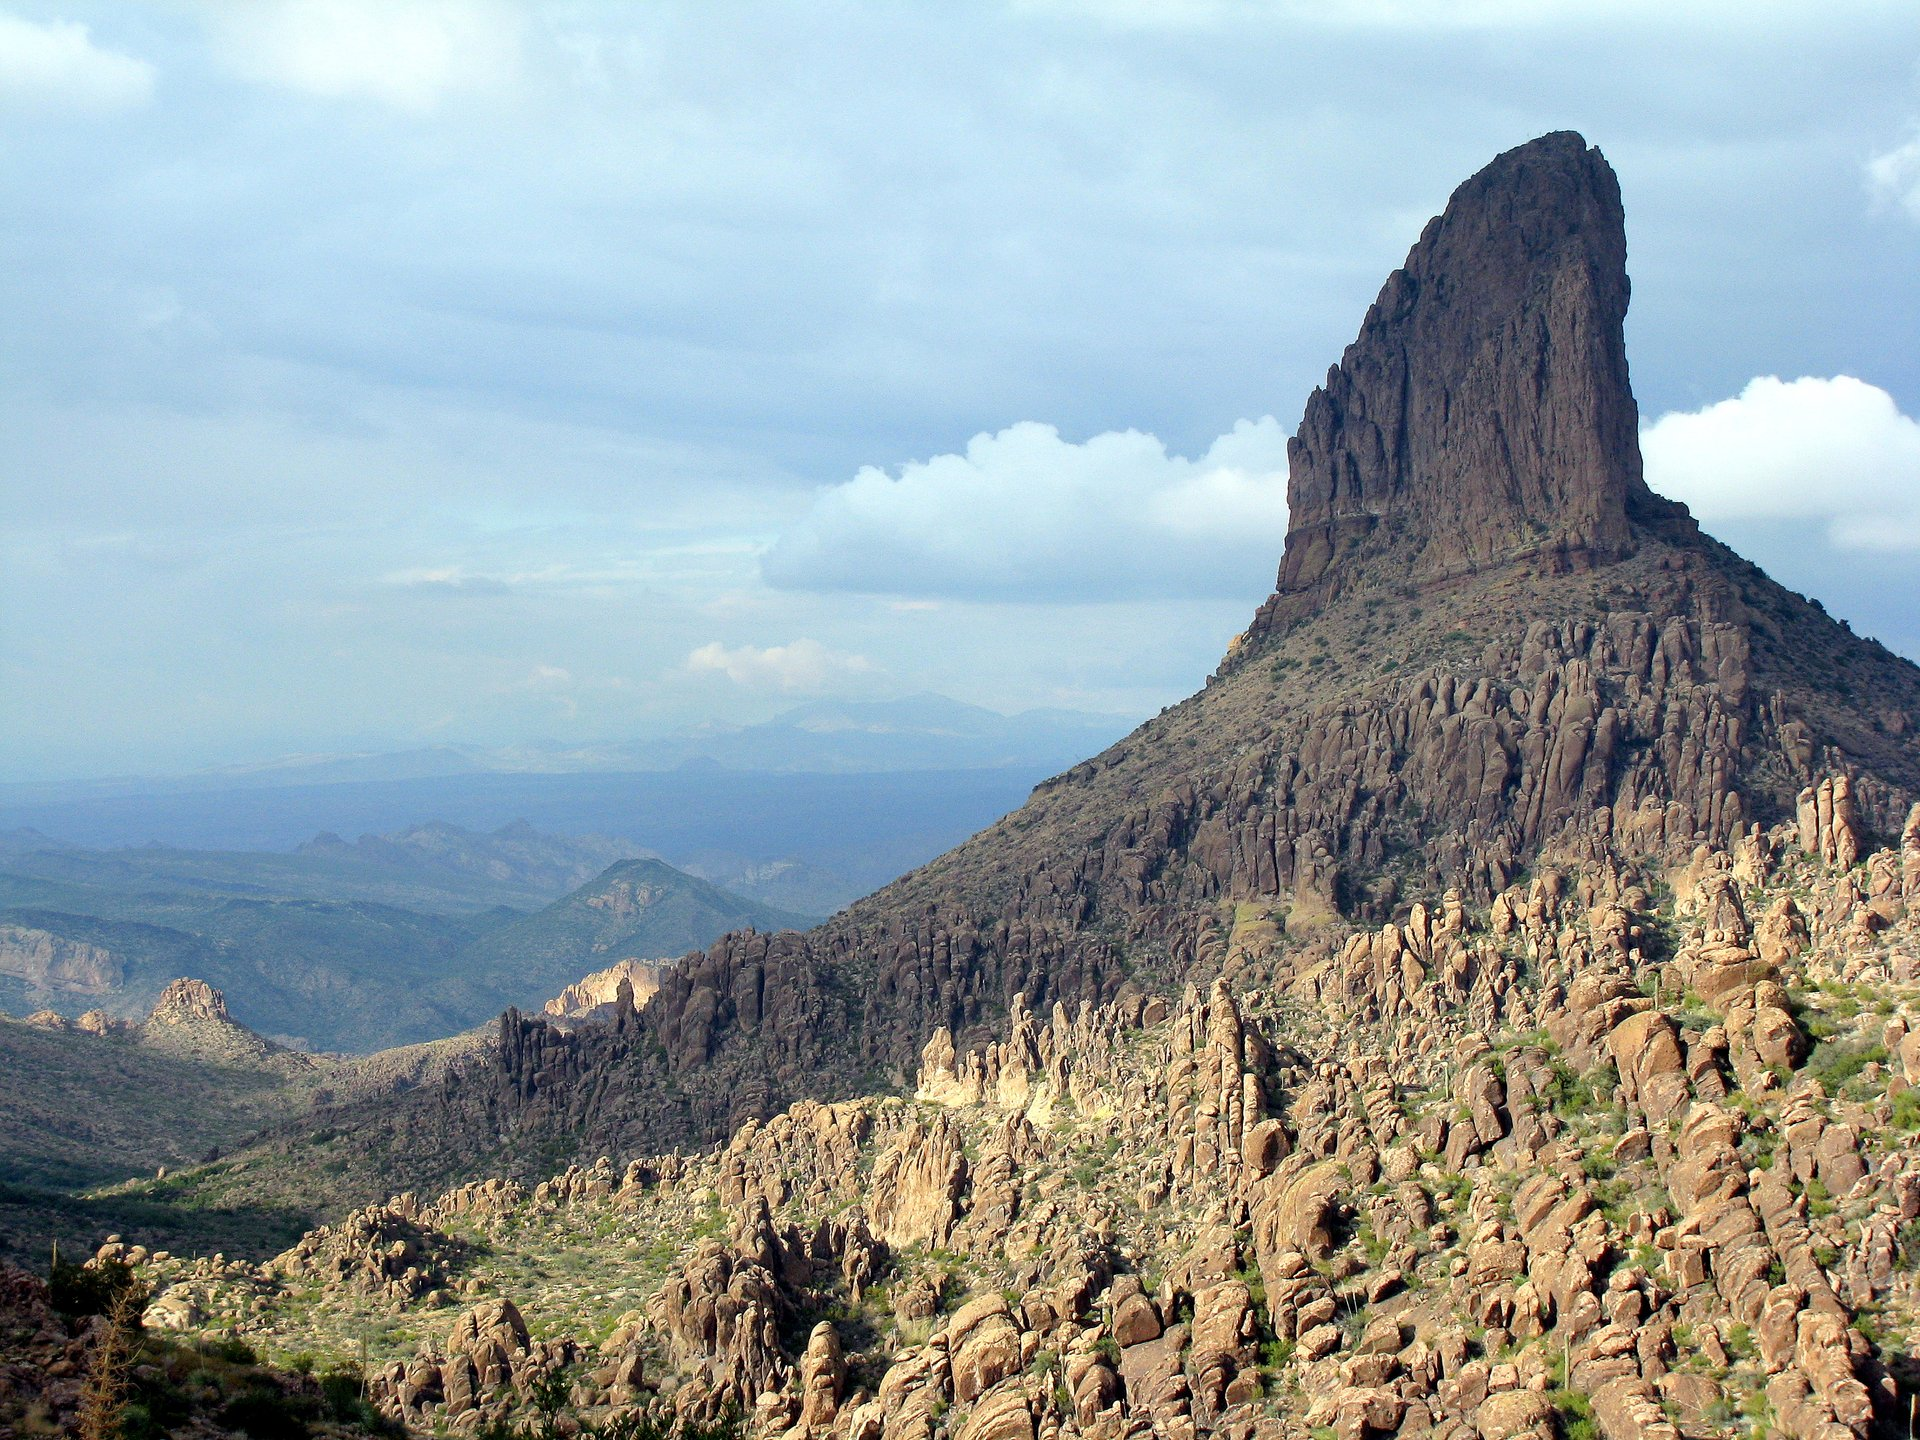 Weaver's Needle from Peralta Trail, AZ 2020